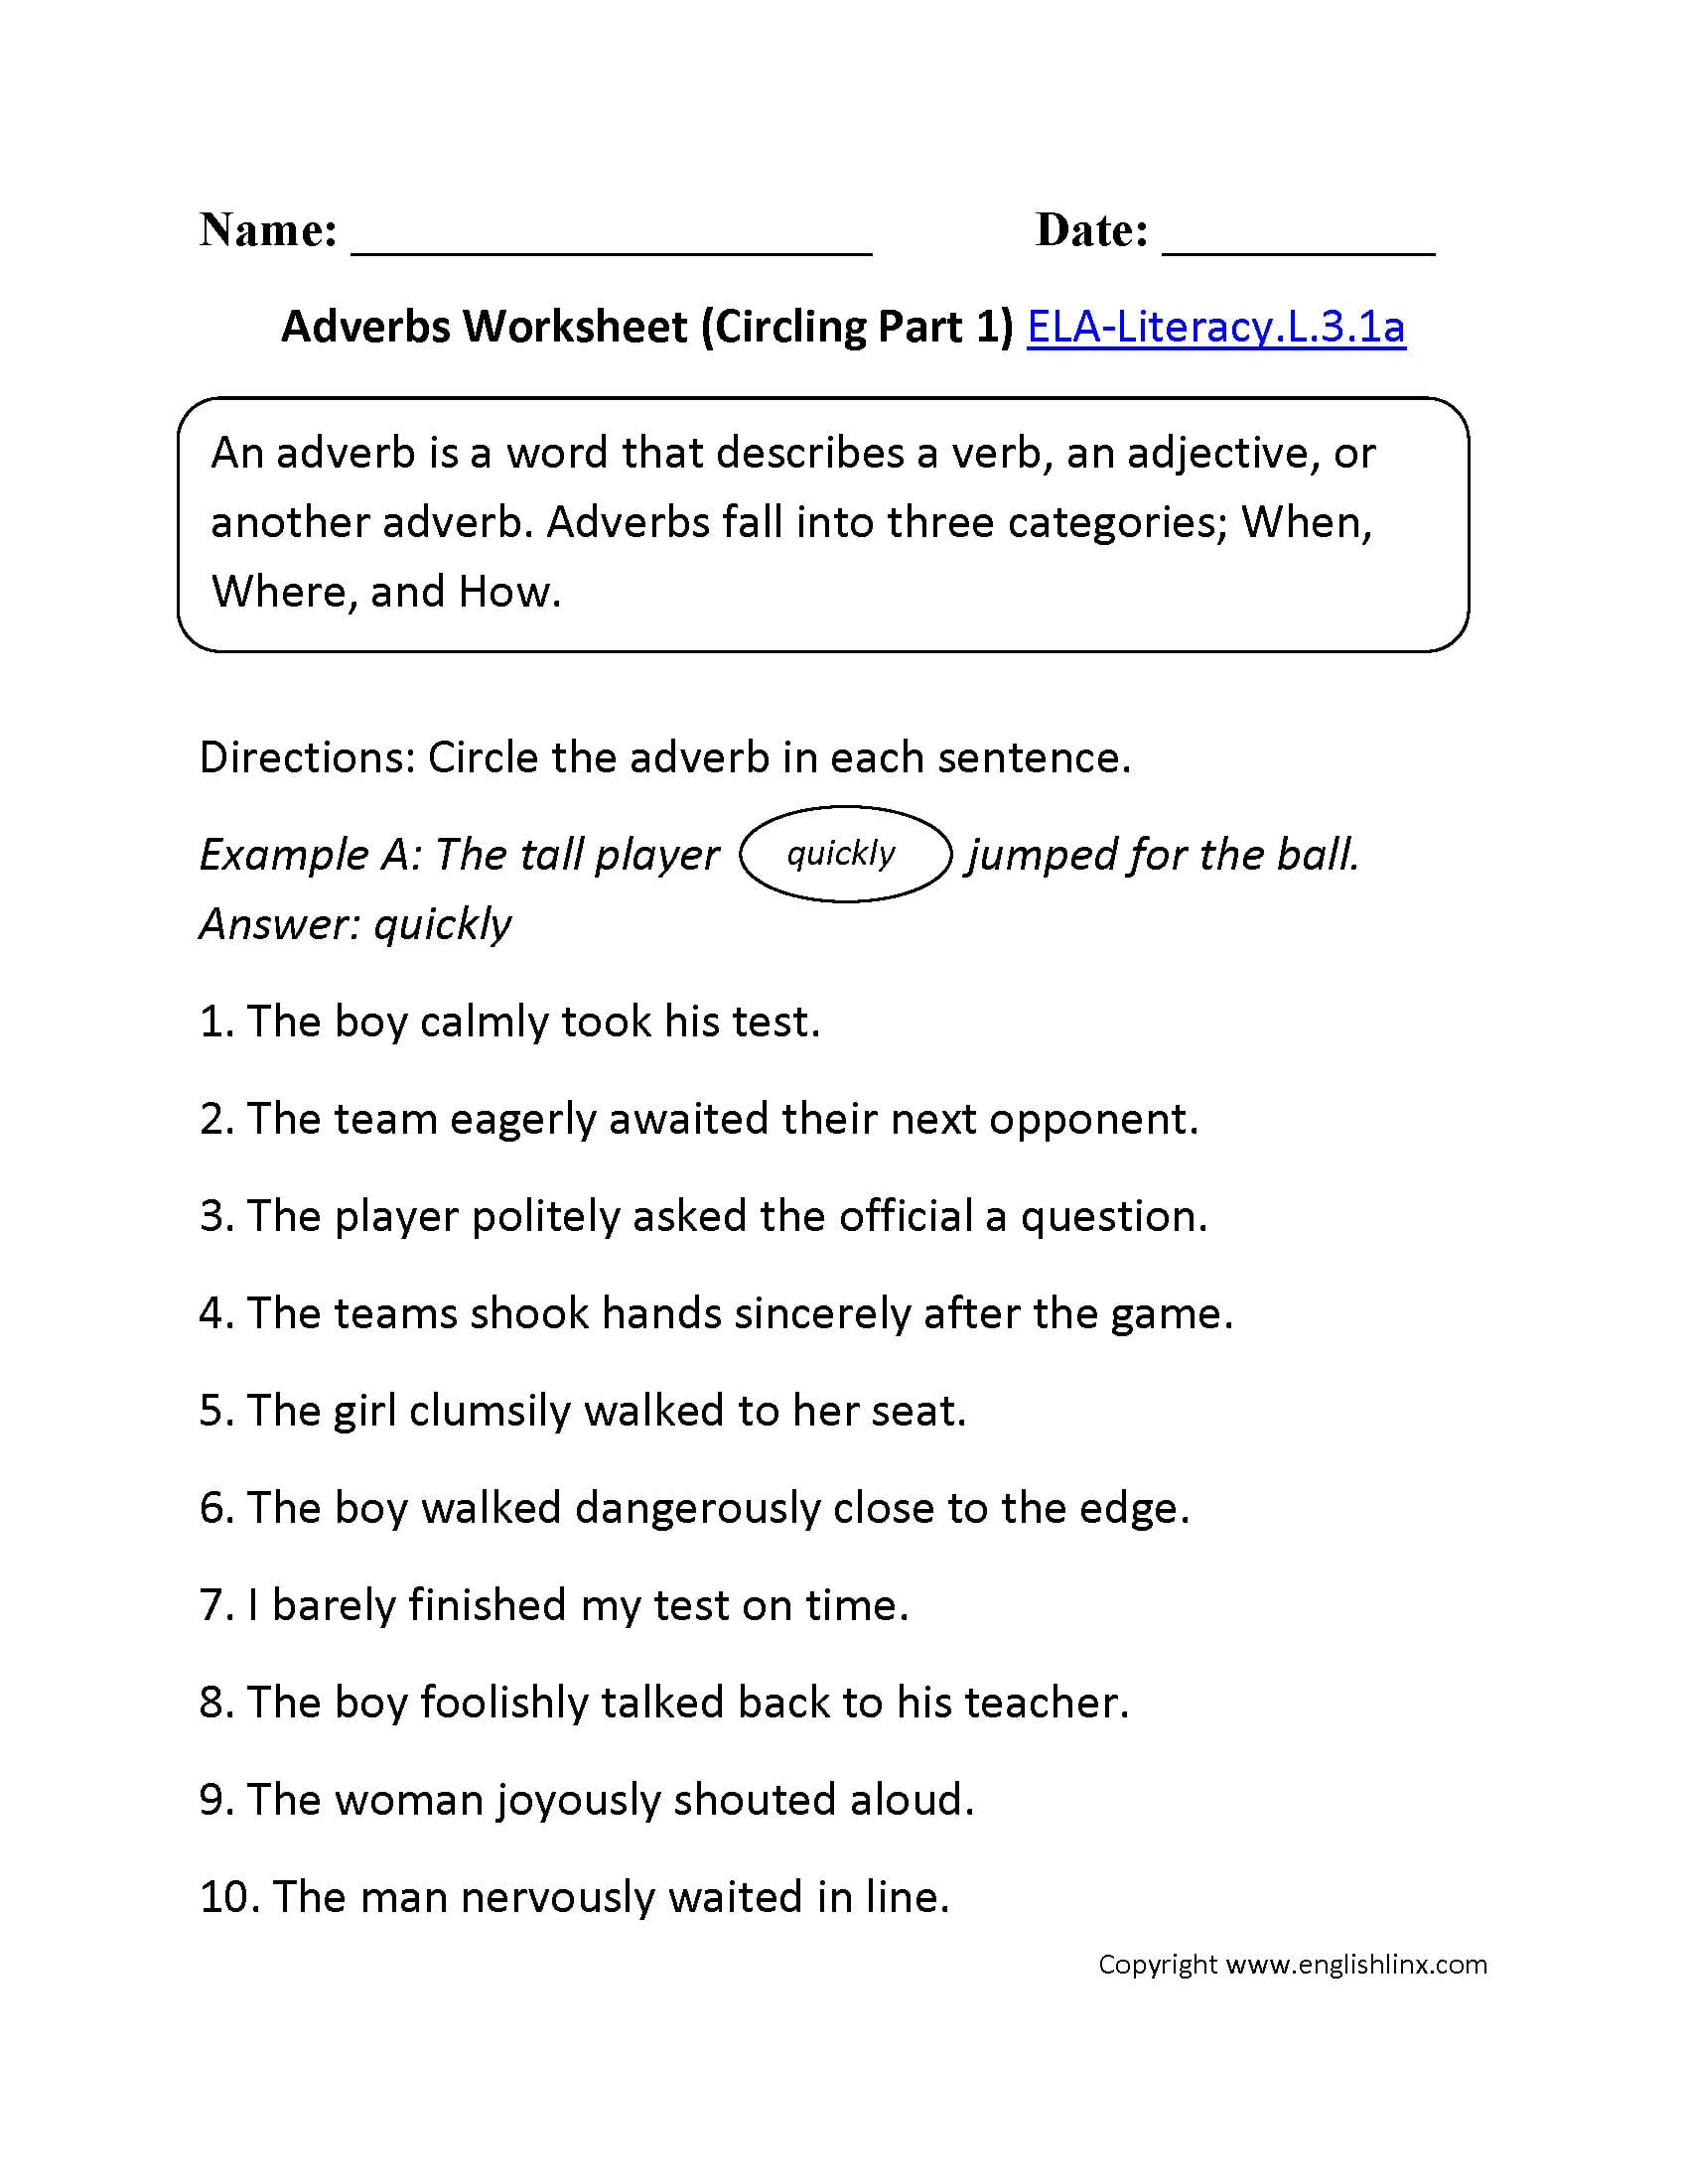 Relative Adverbs Worksheet 4th Grade 5th Grade Adverb Worksheets to Print